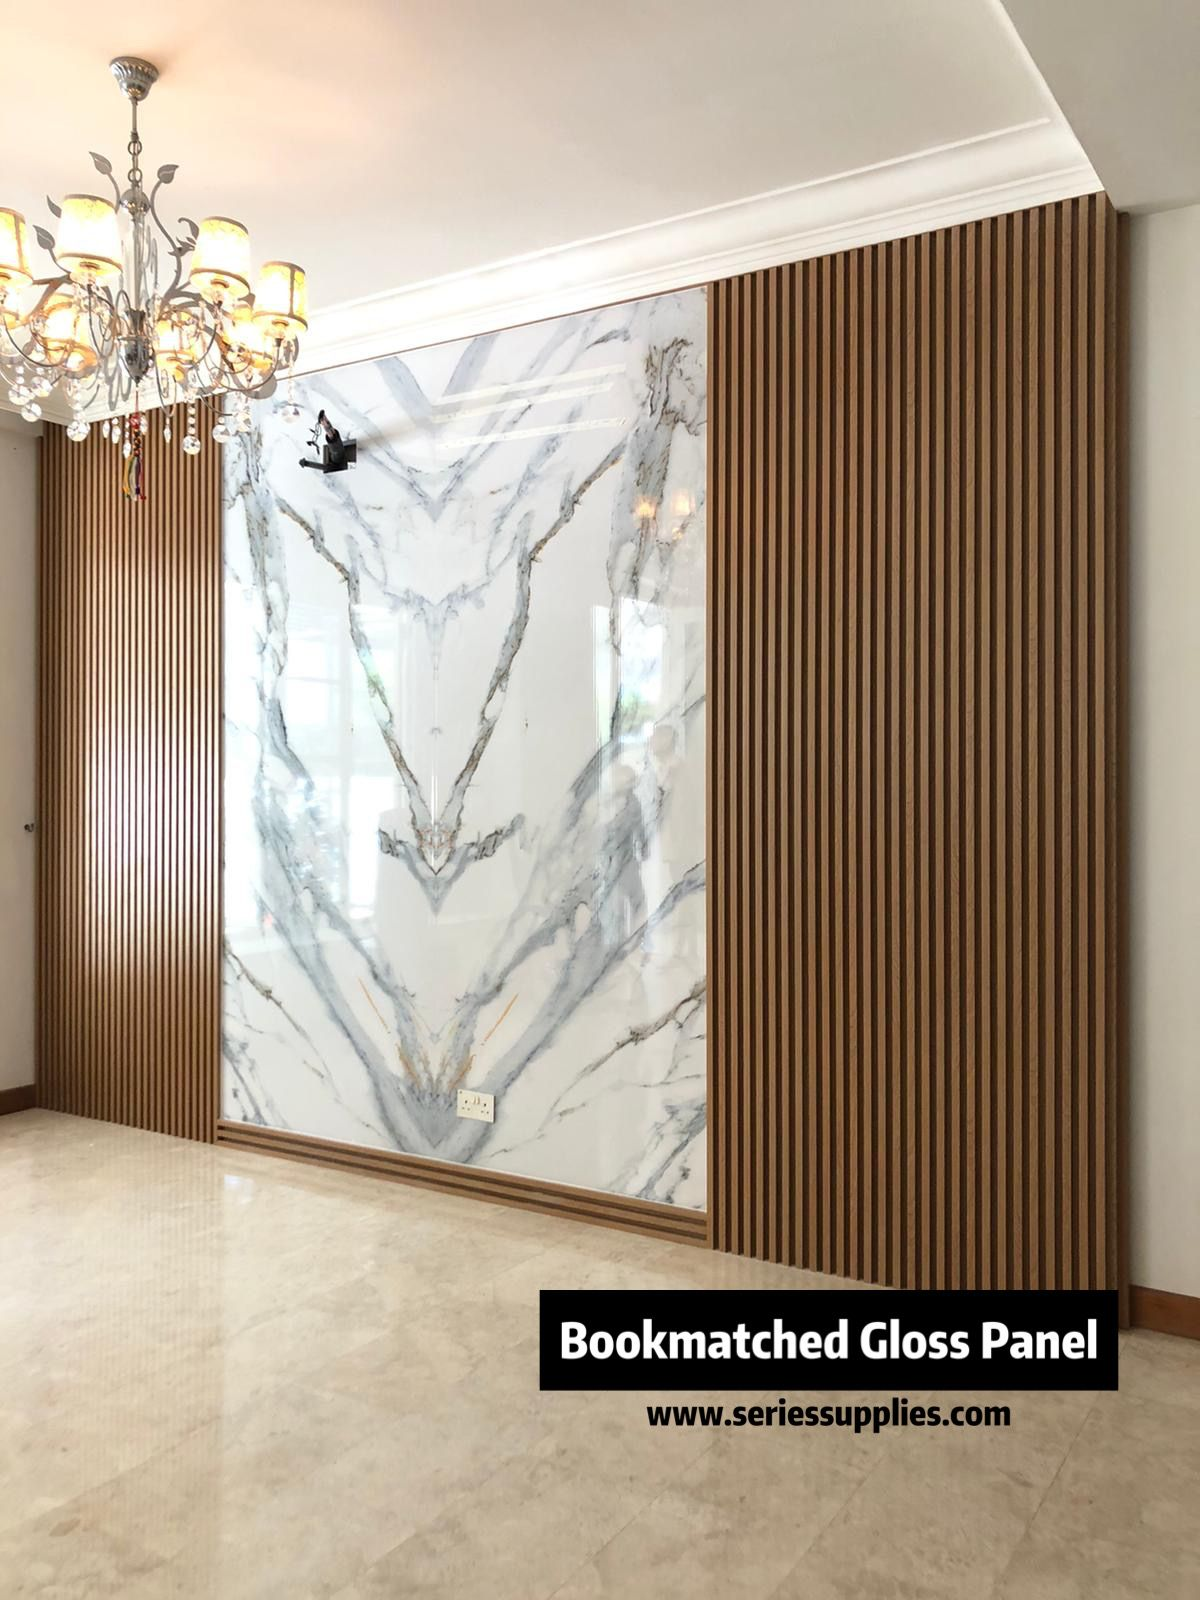 Marble Book matched Gloss Panel